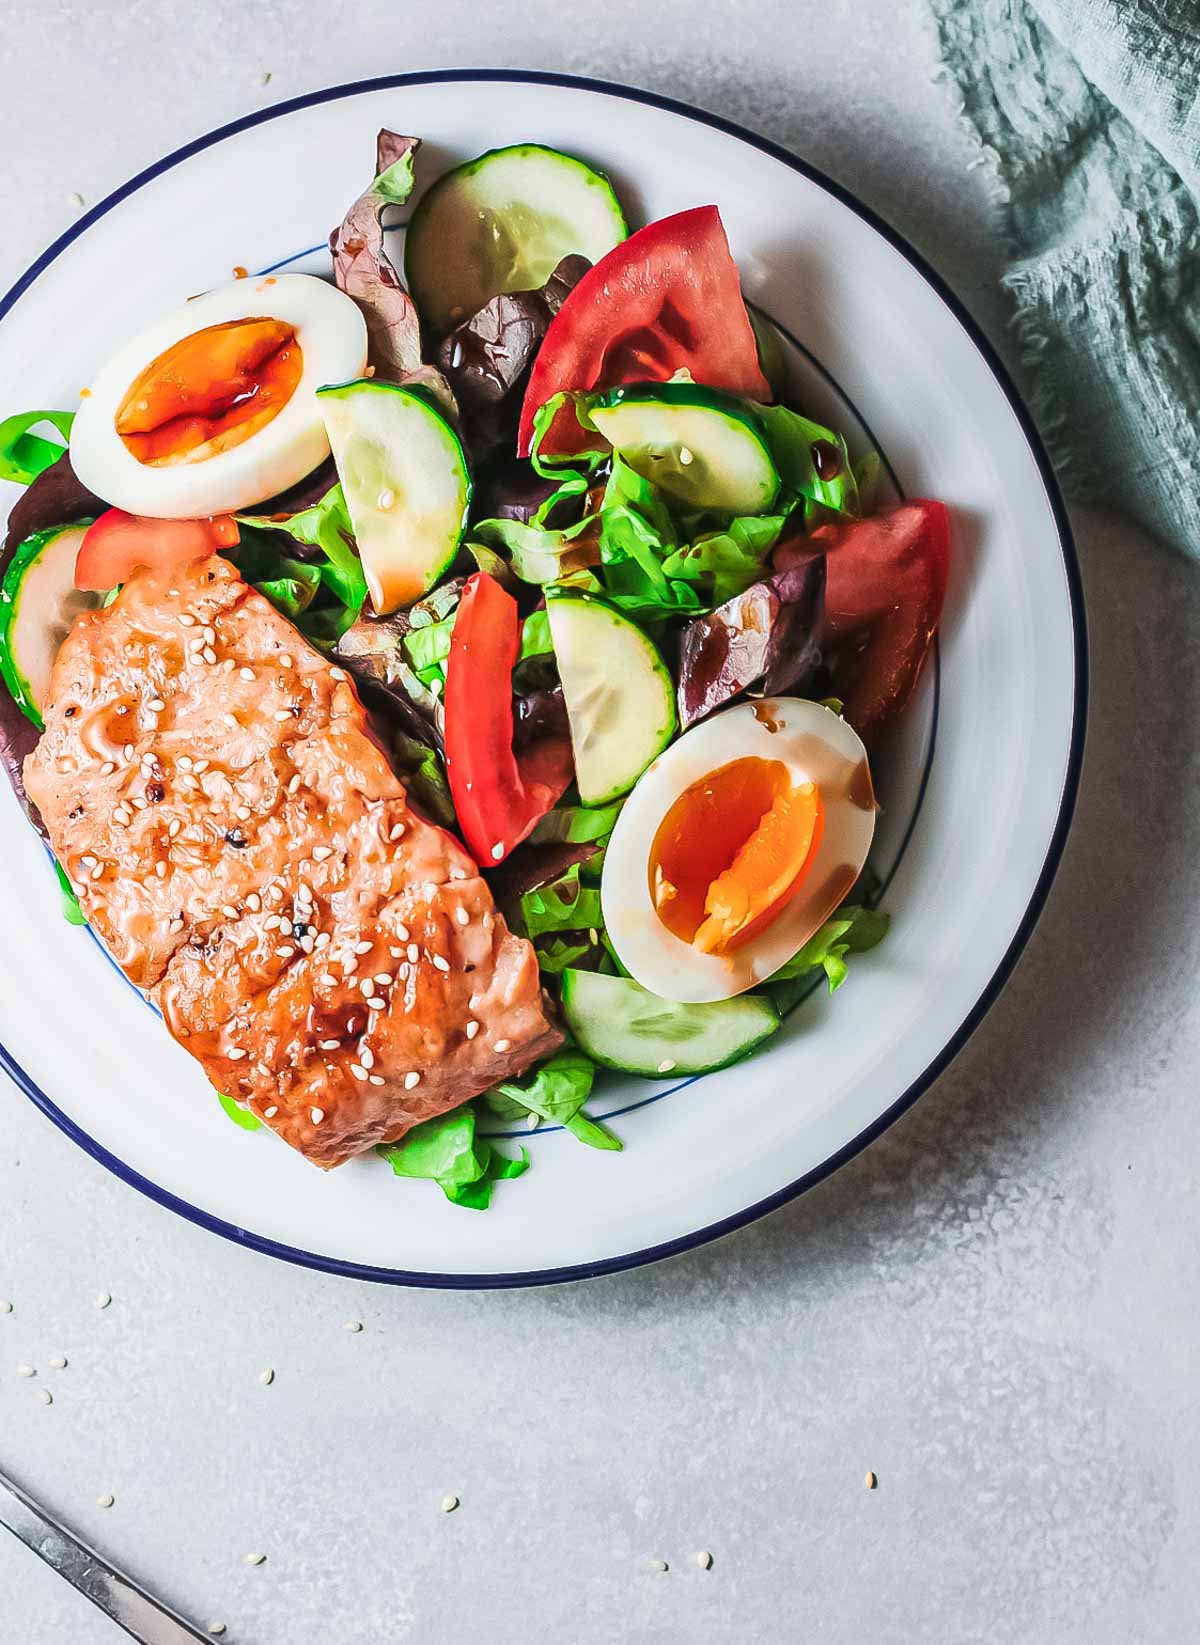 one plate filled with teriyaki salmon and a green salad